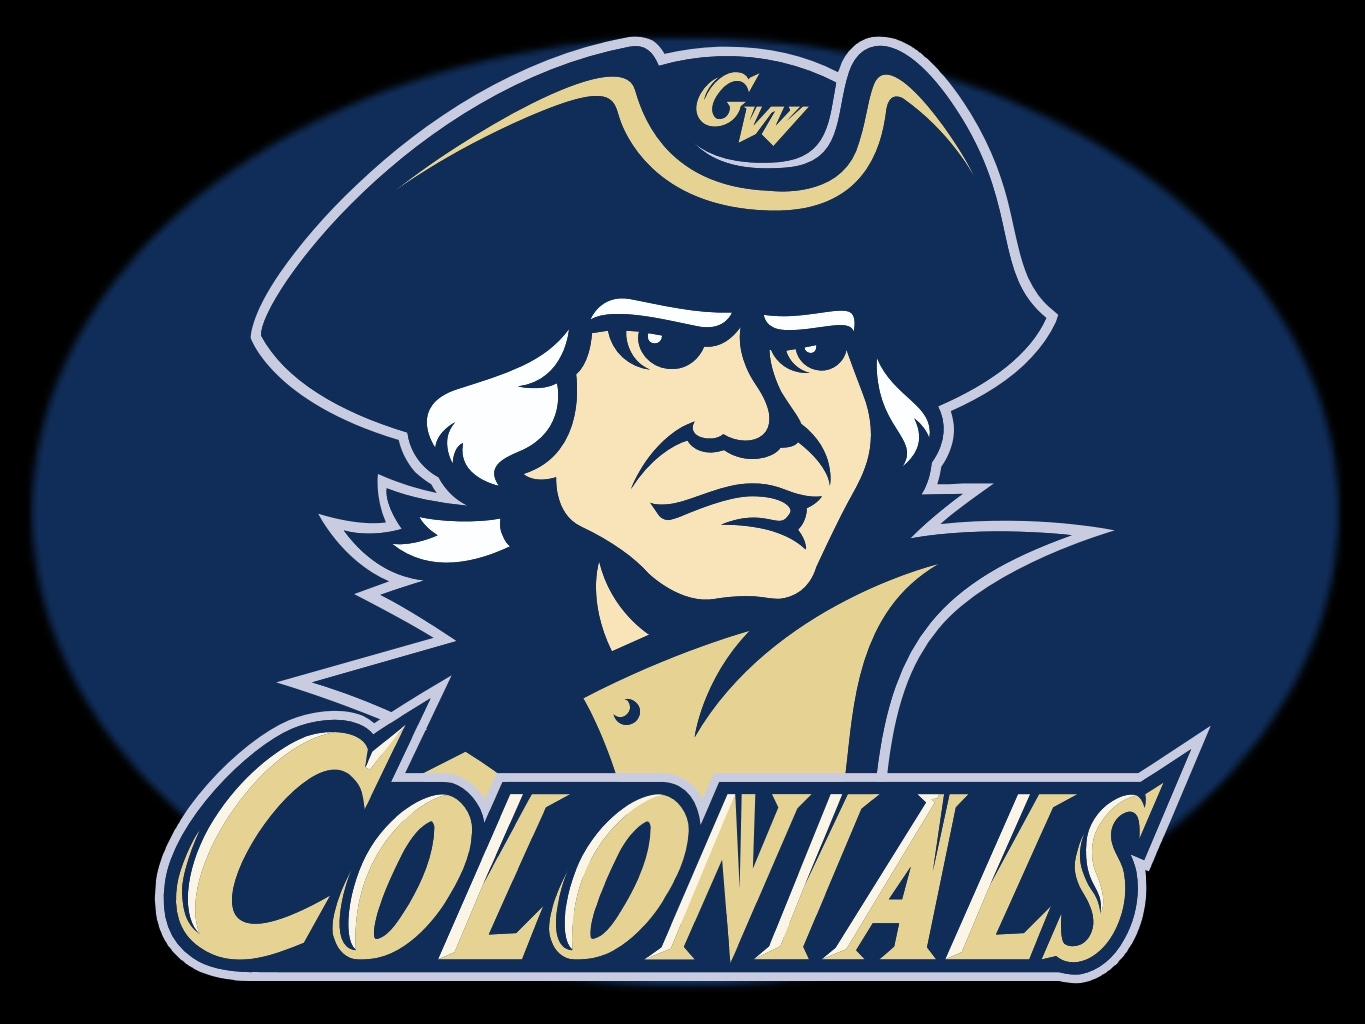 1 george washington colonials basketball (worst ncaa tournament teams of all time)